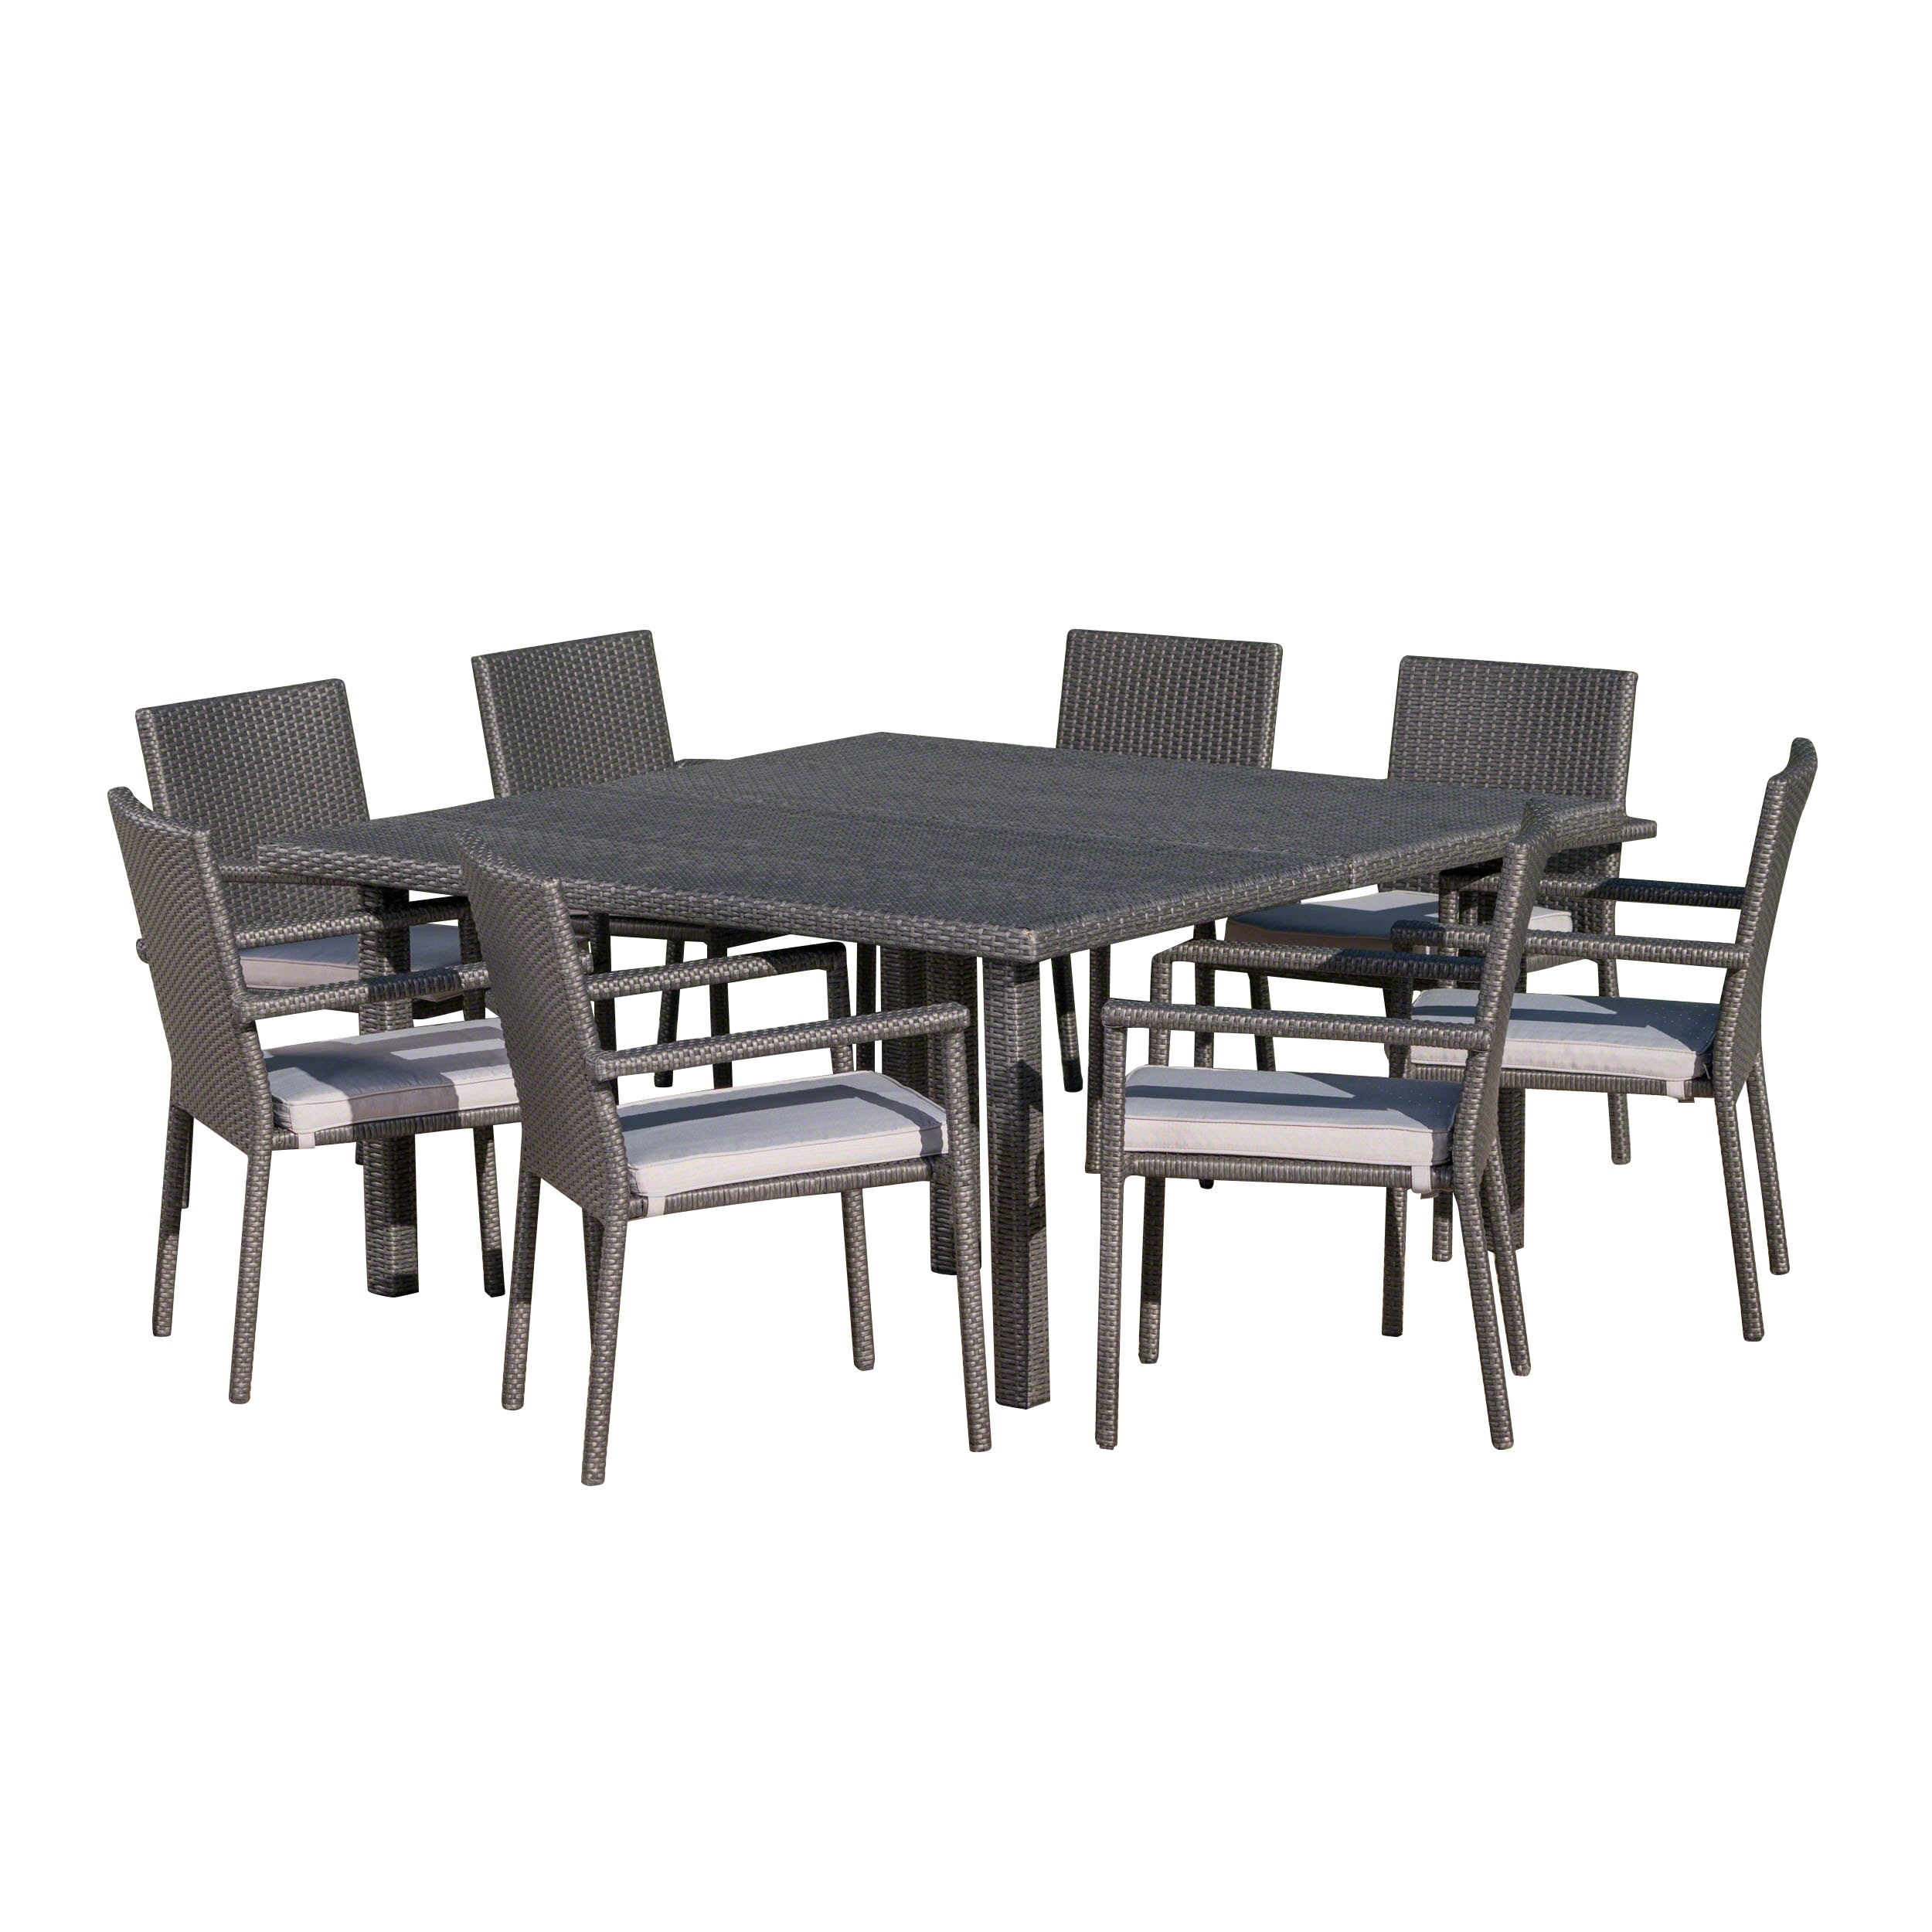 Aden Outdoor 9 Piece Wicker Dining Set with Water Resistant Cushions Multi brownTextured Beige